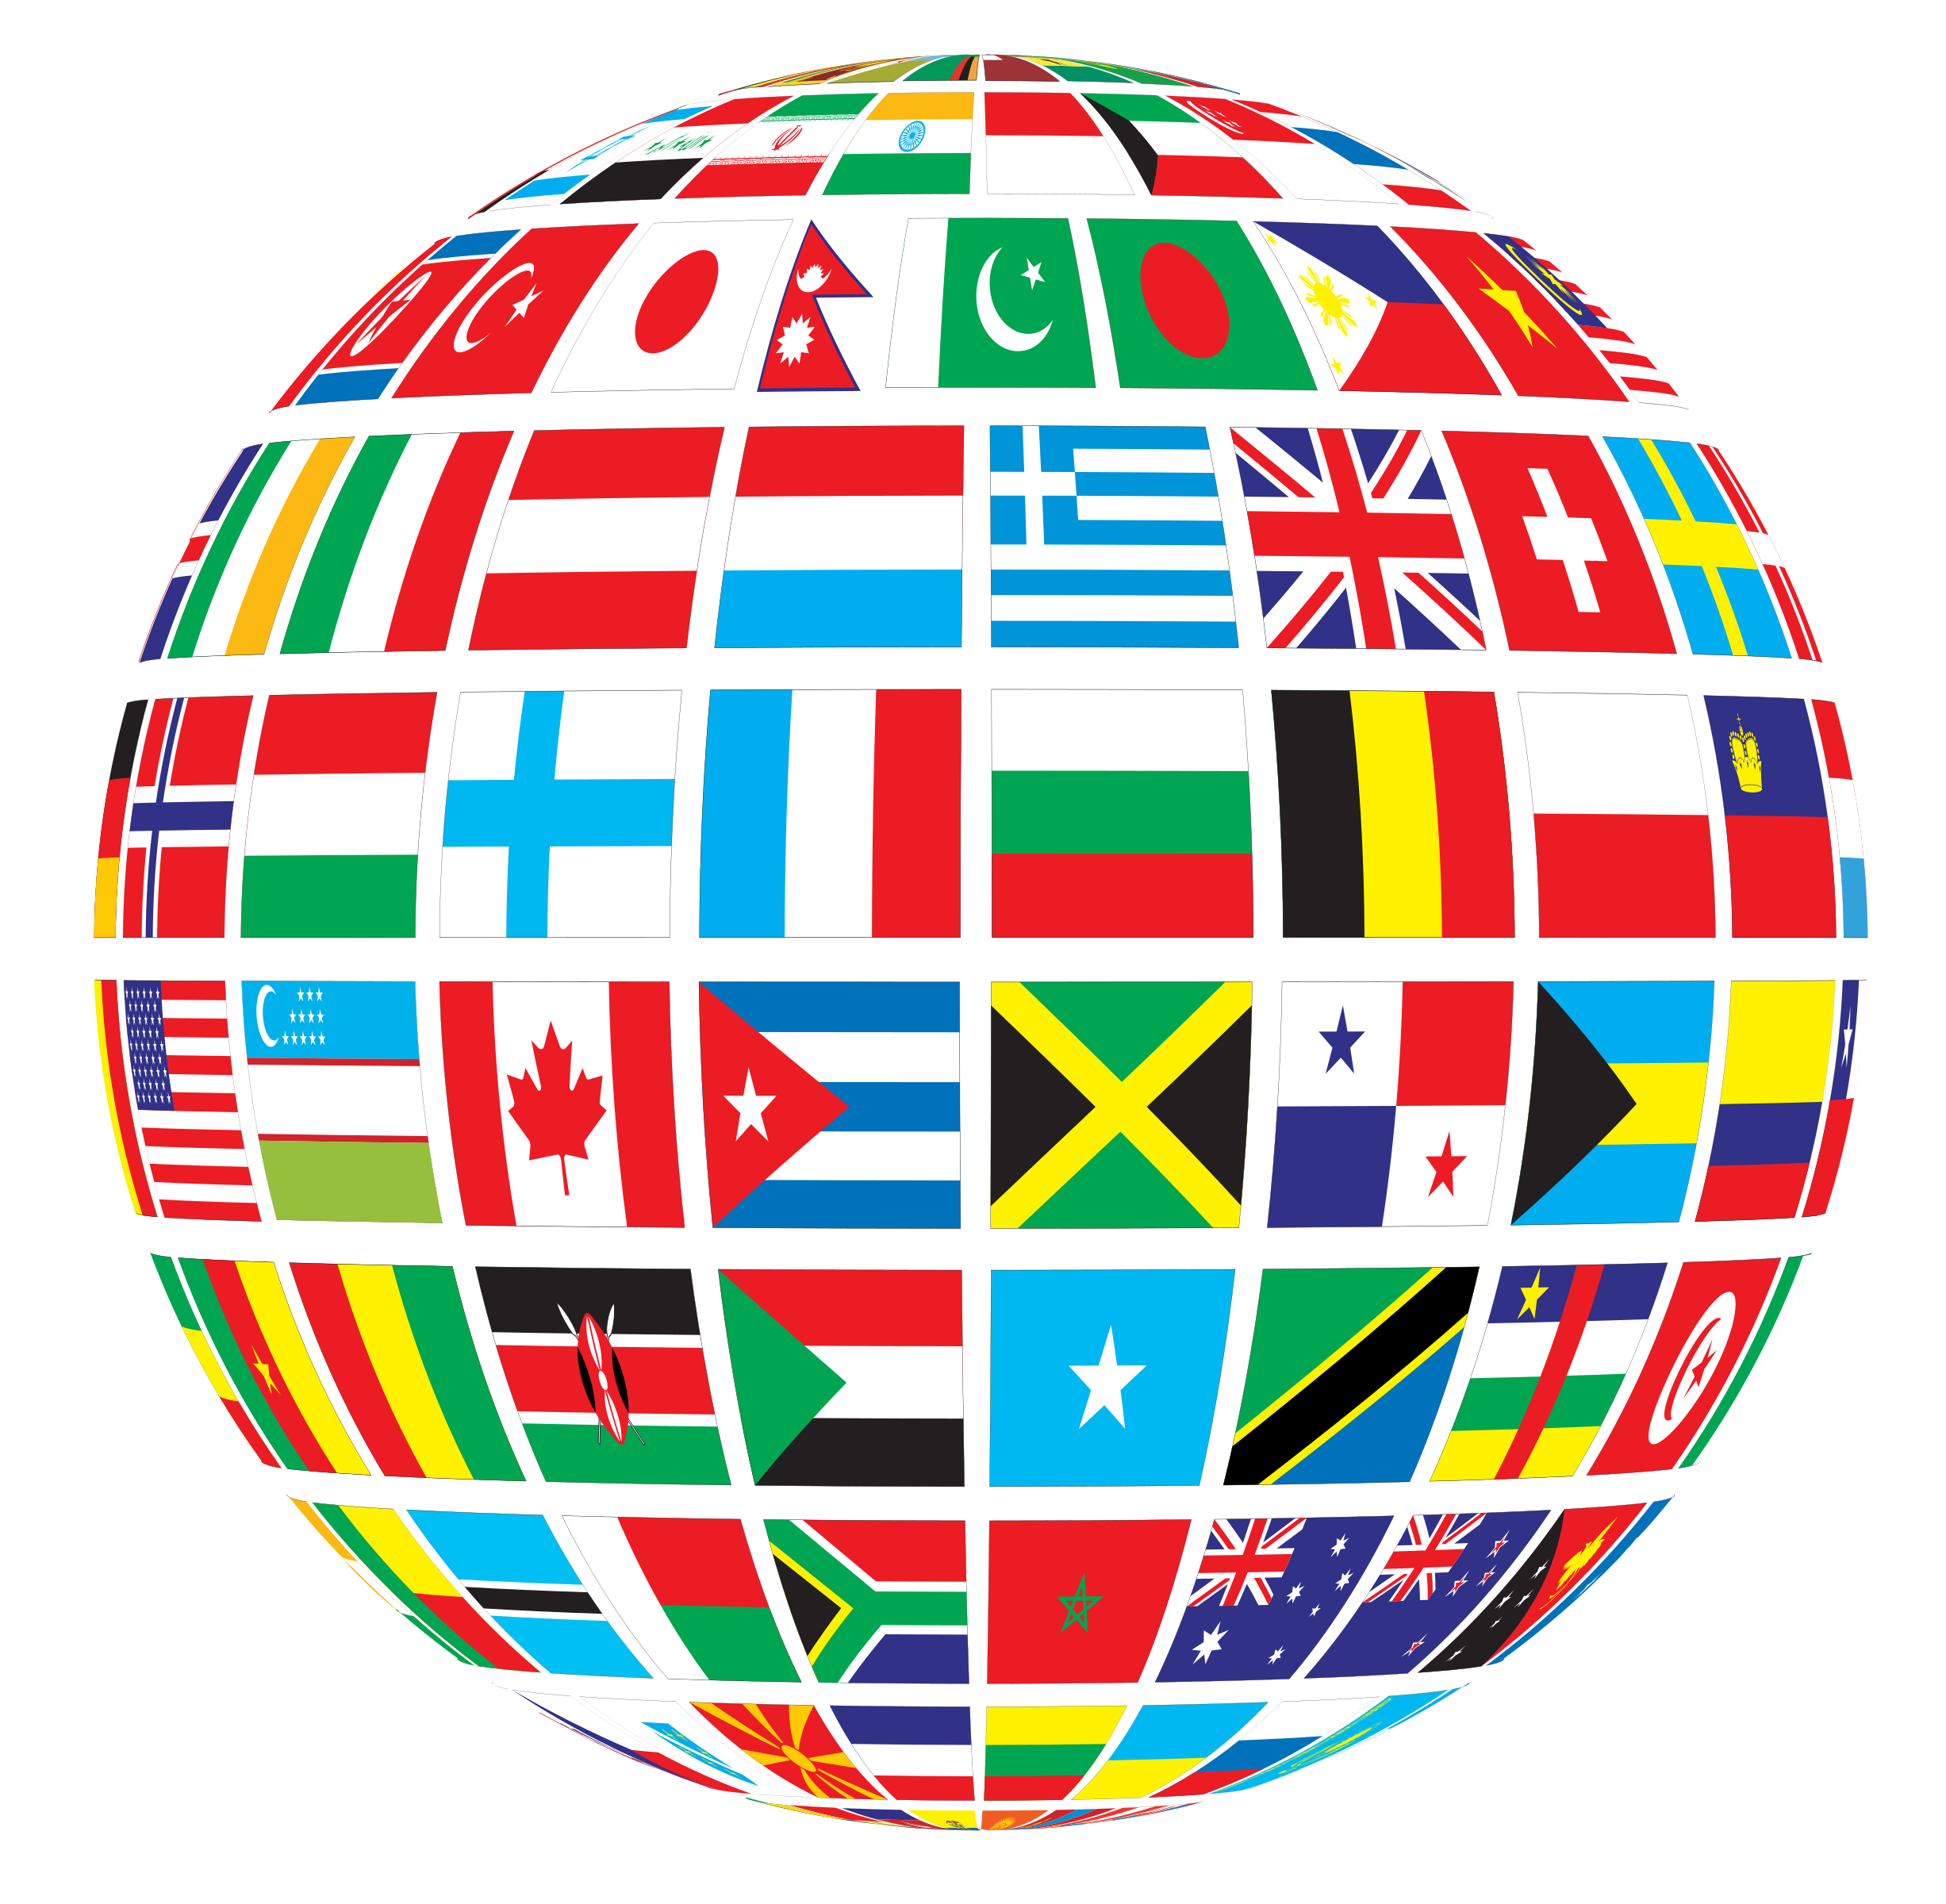 Missions clipart international flag. World flags globe by